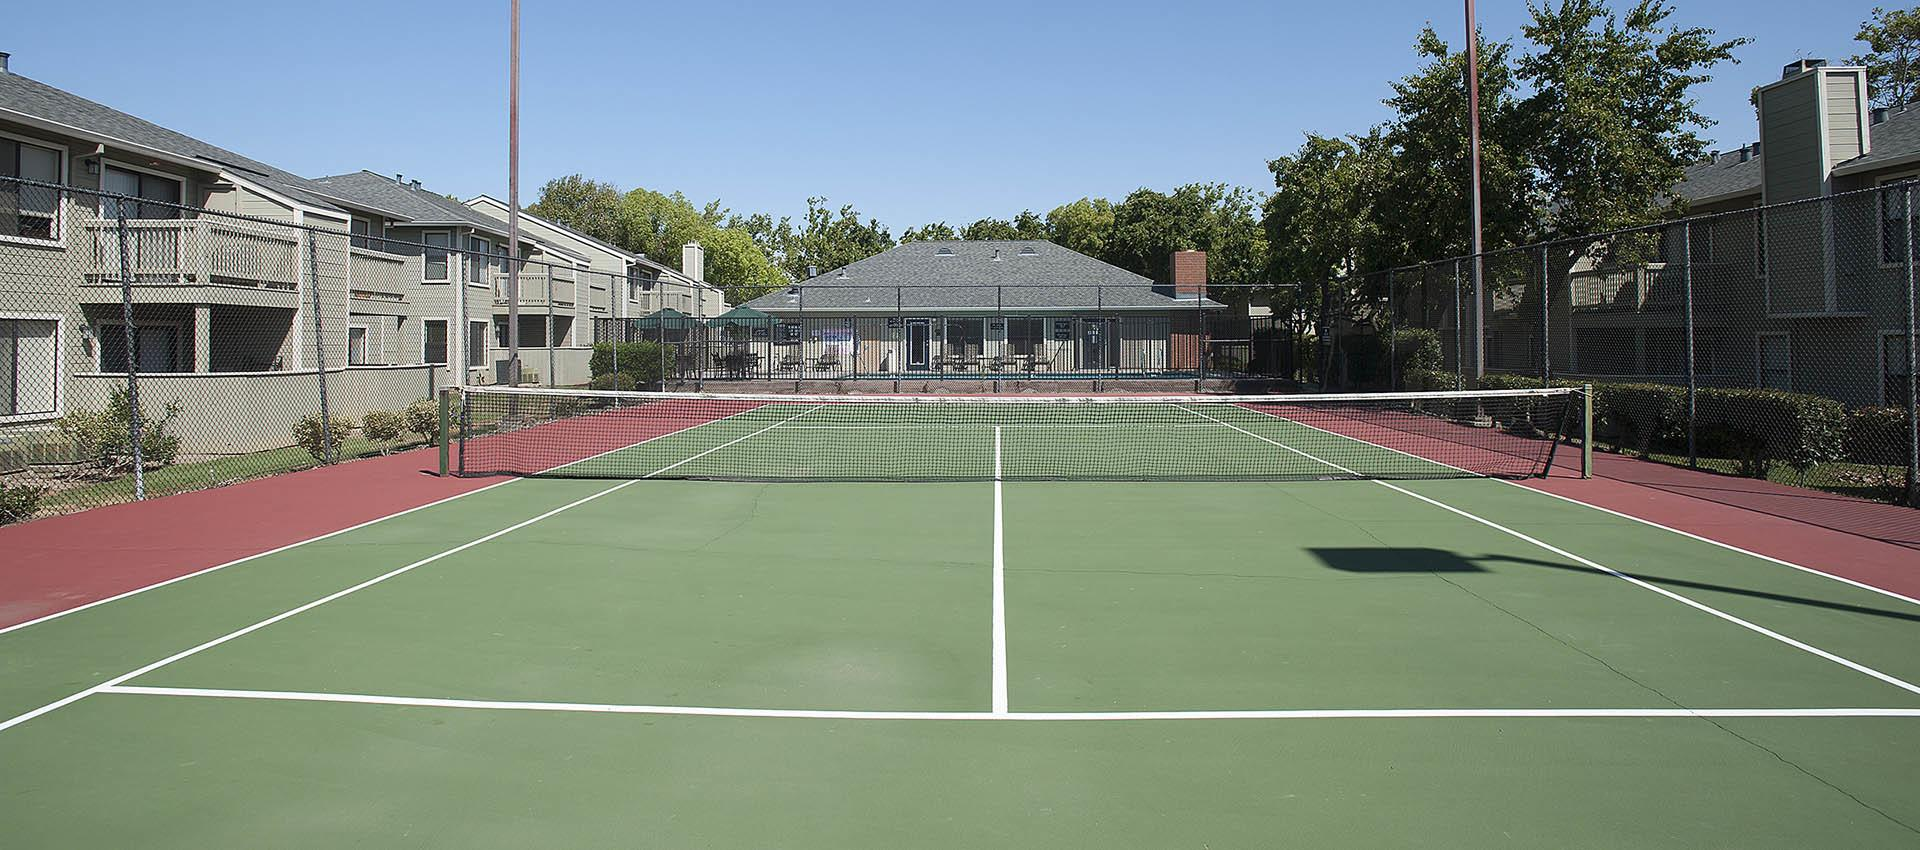 Enjoy the tennis court at Sandpiper Village Apartment Homes